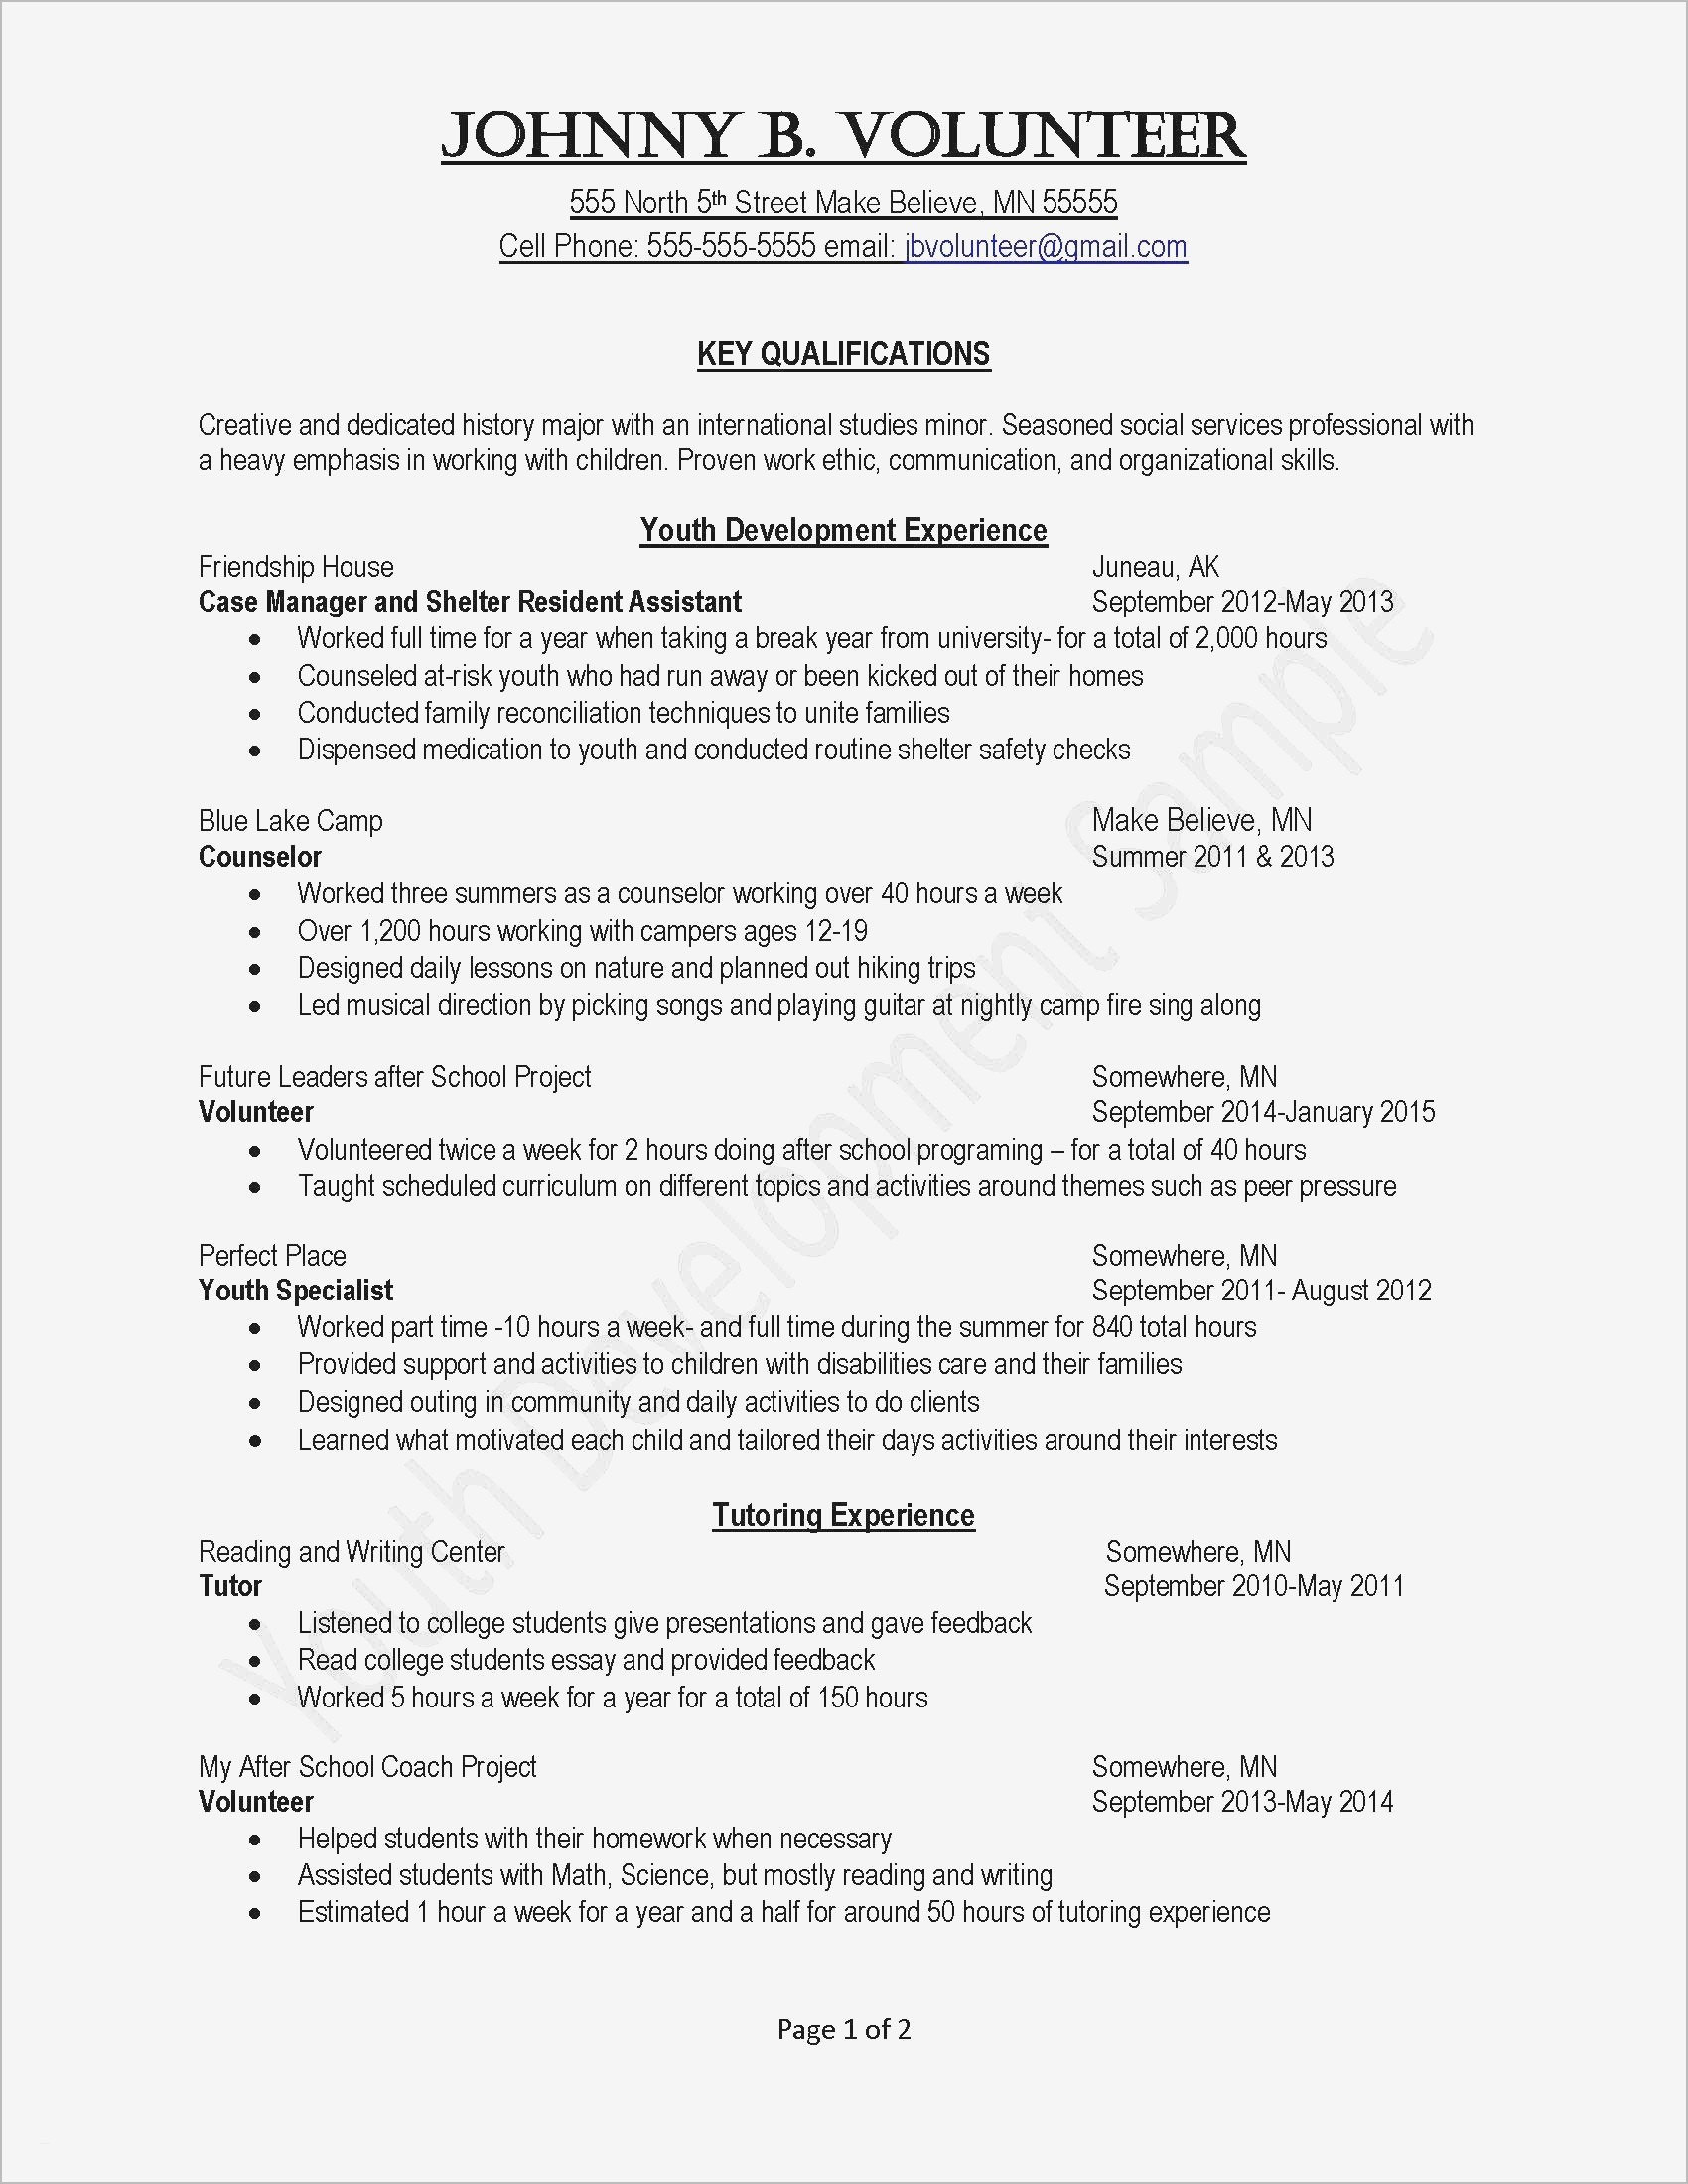 Cover Letter Template for It Job - Skills Resume Templates Beautiful Job Fer Letter Template Us Copy Od